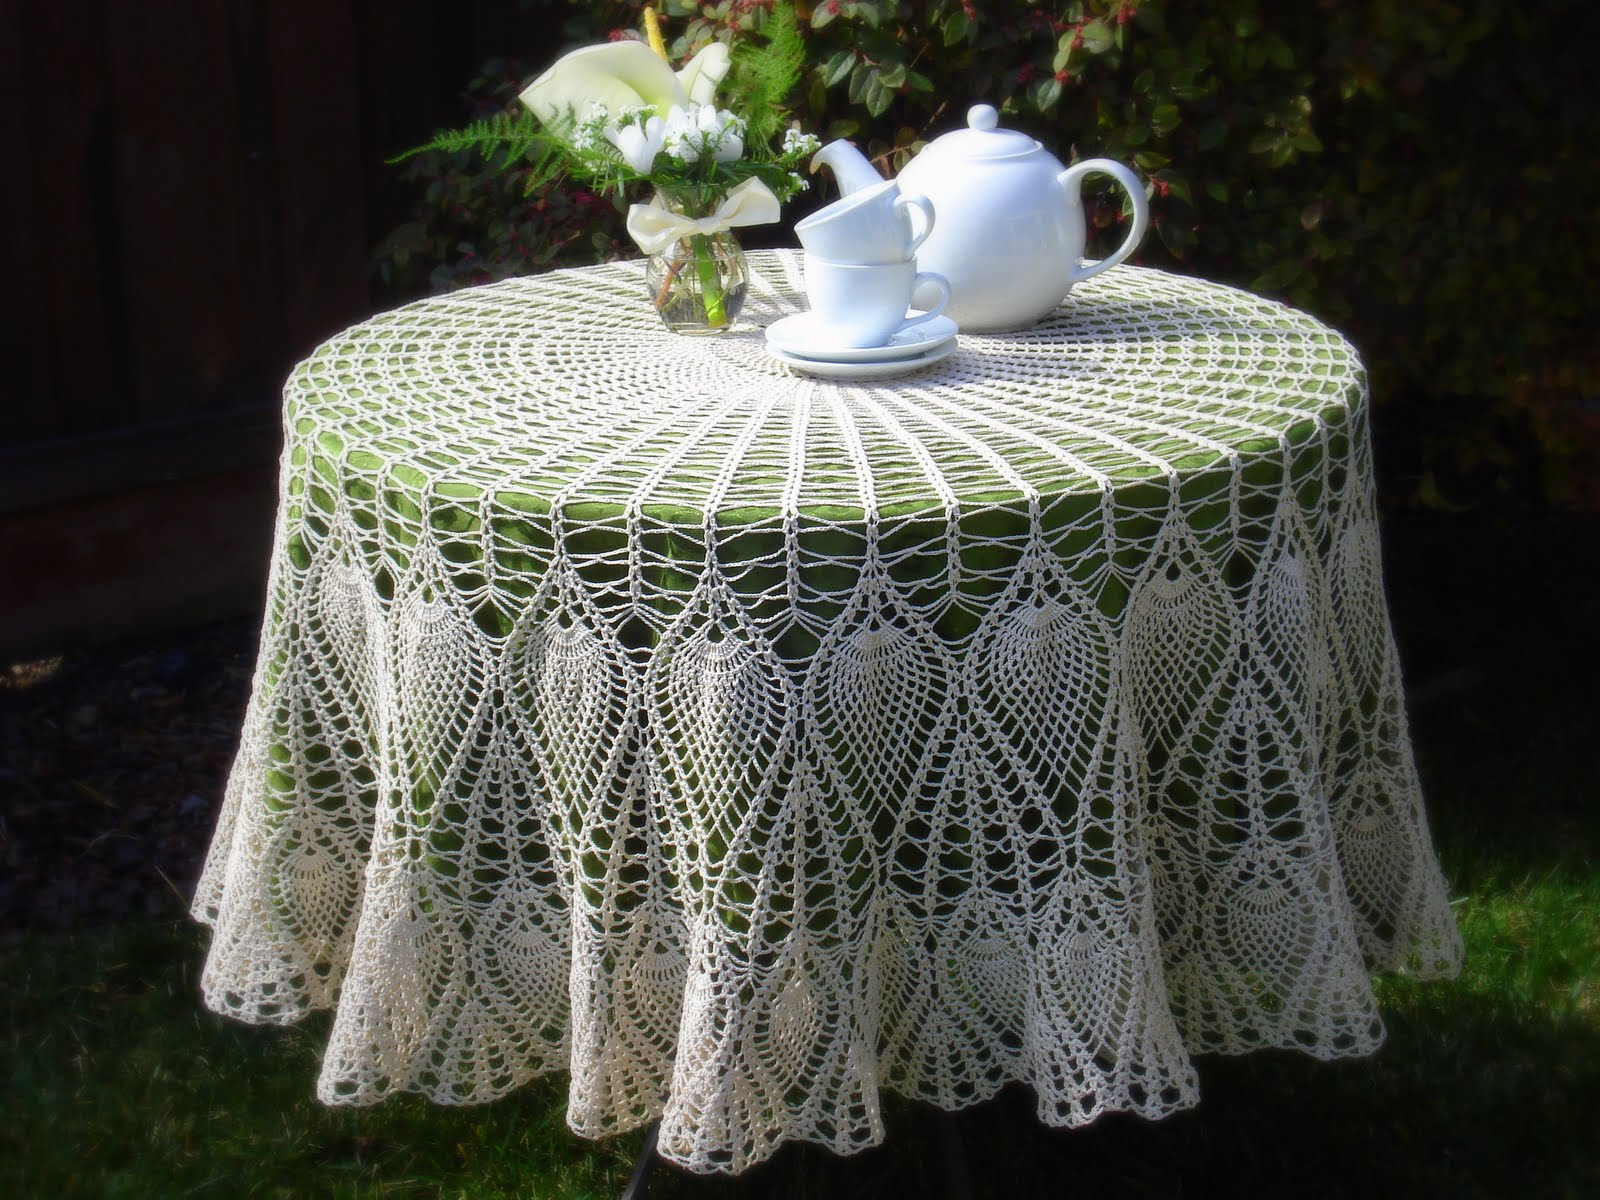 Crochet Tablecloth : Crochet - All About Crocheting - Free Patterns and Instructions